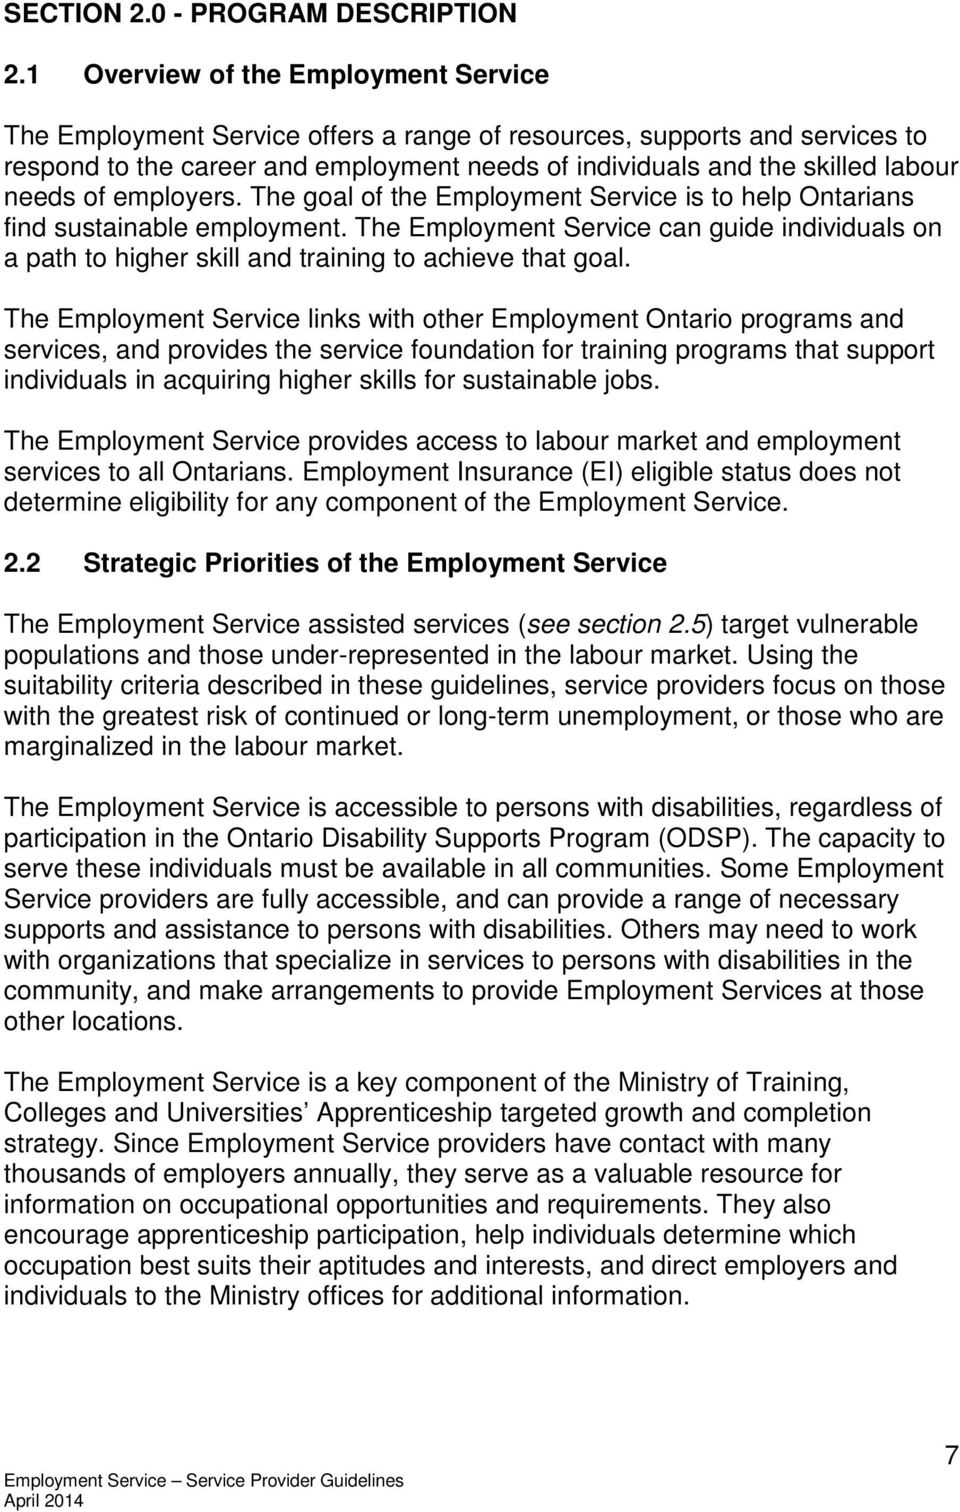 needs of employers. The goal of the Employment Service is to help Ontarians find sustainable employment.